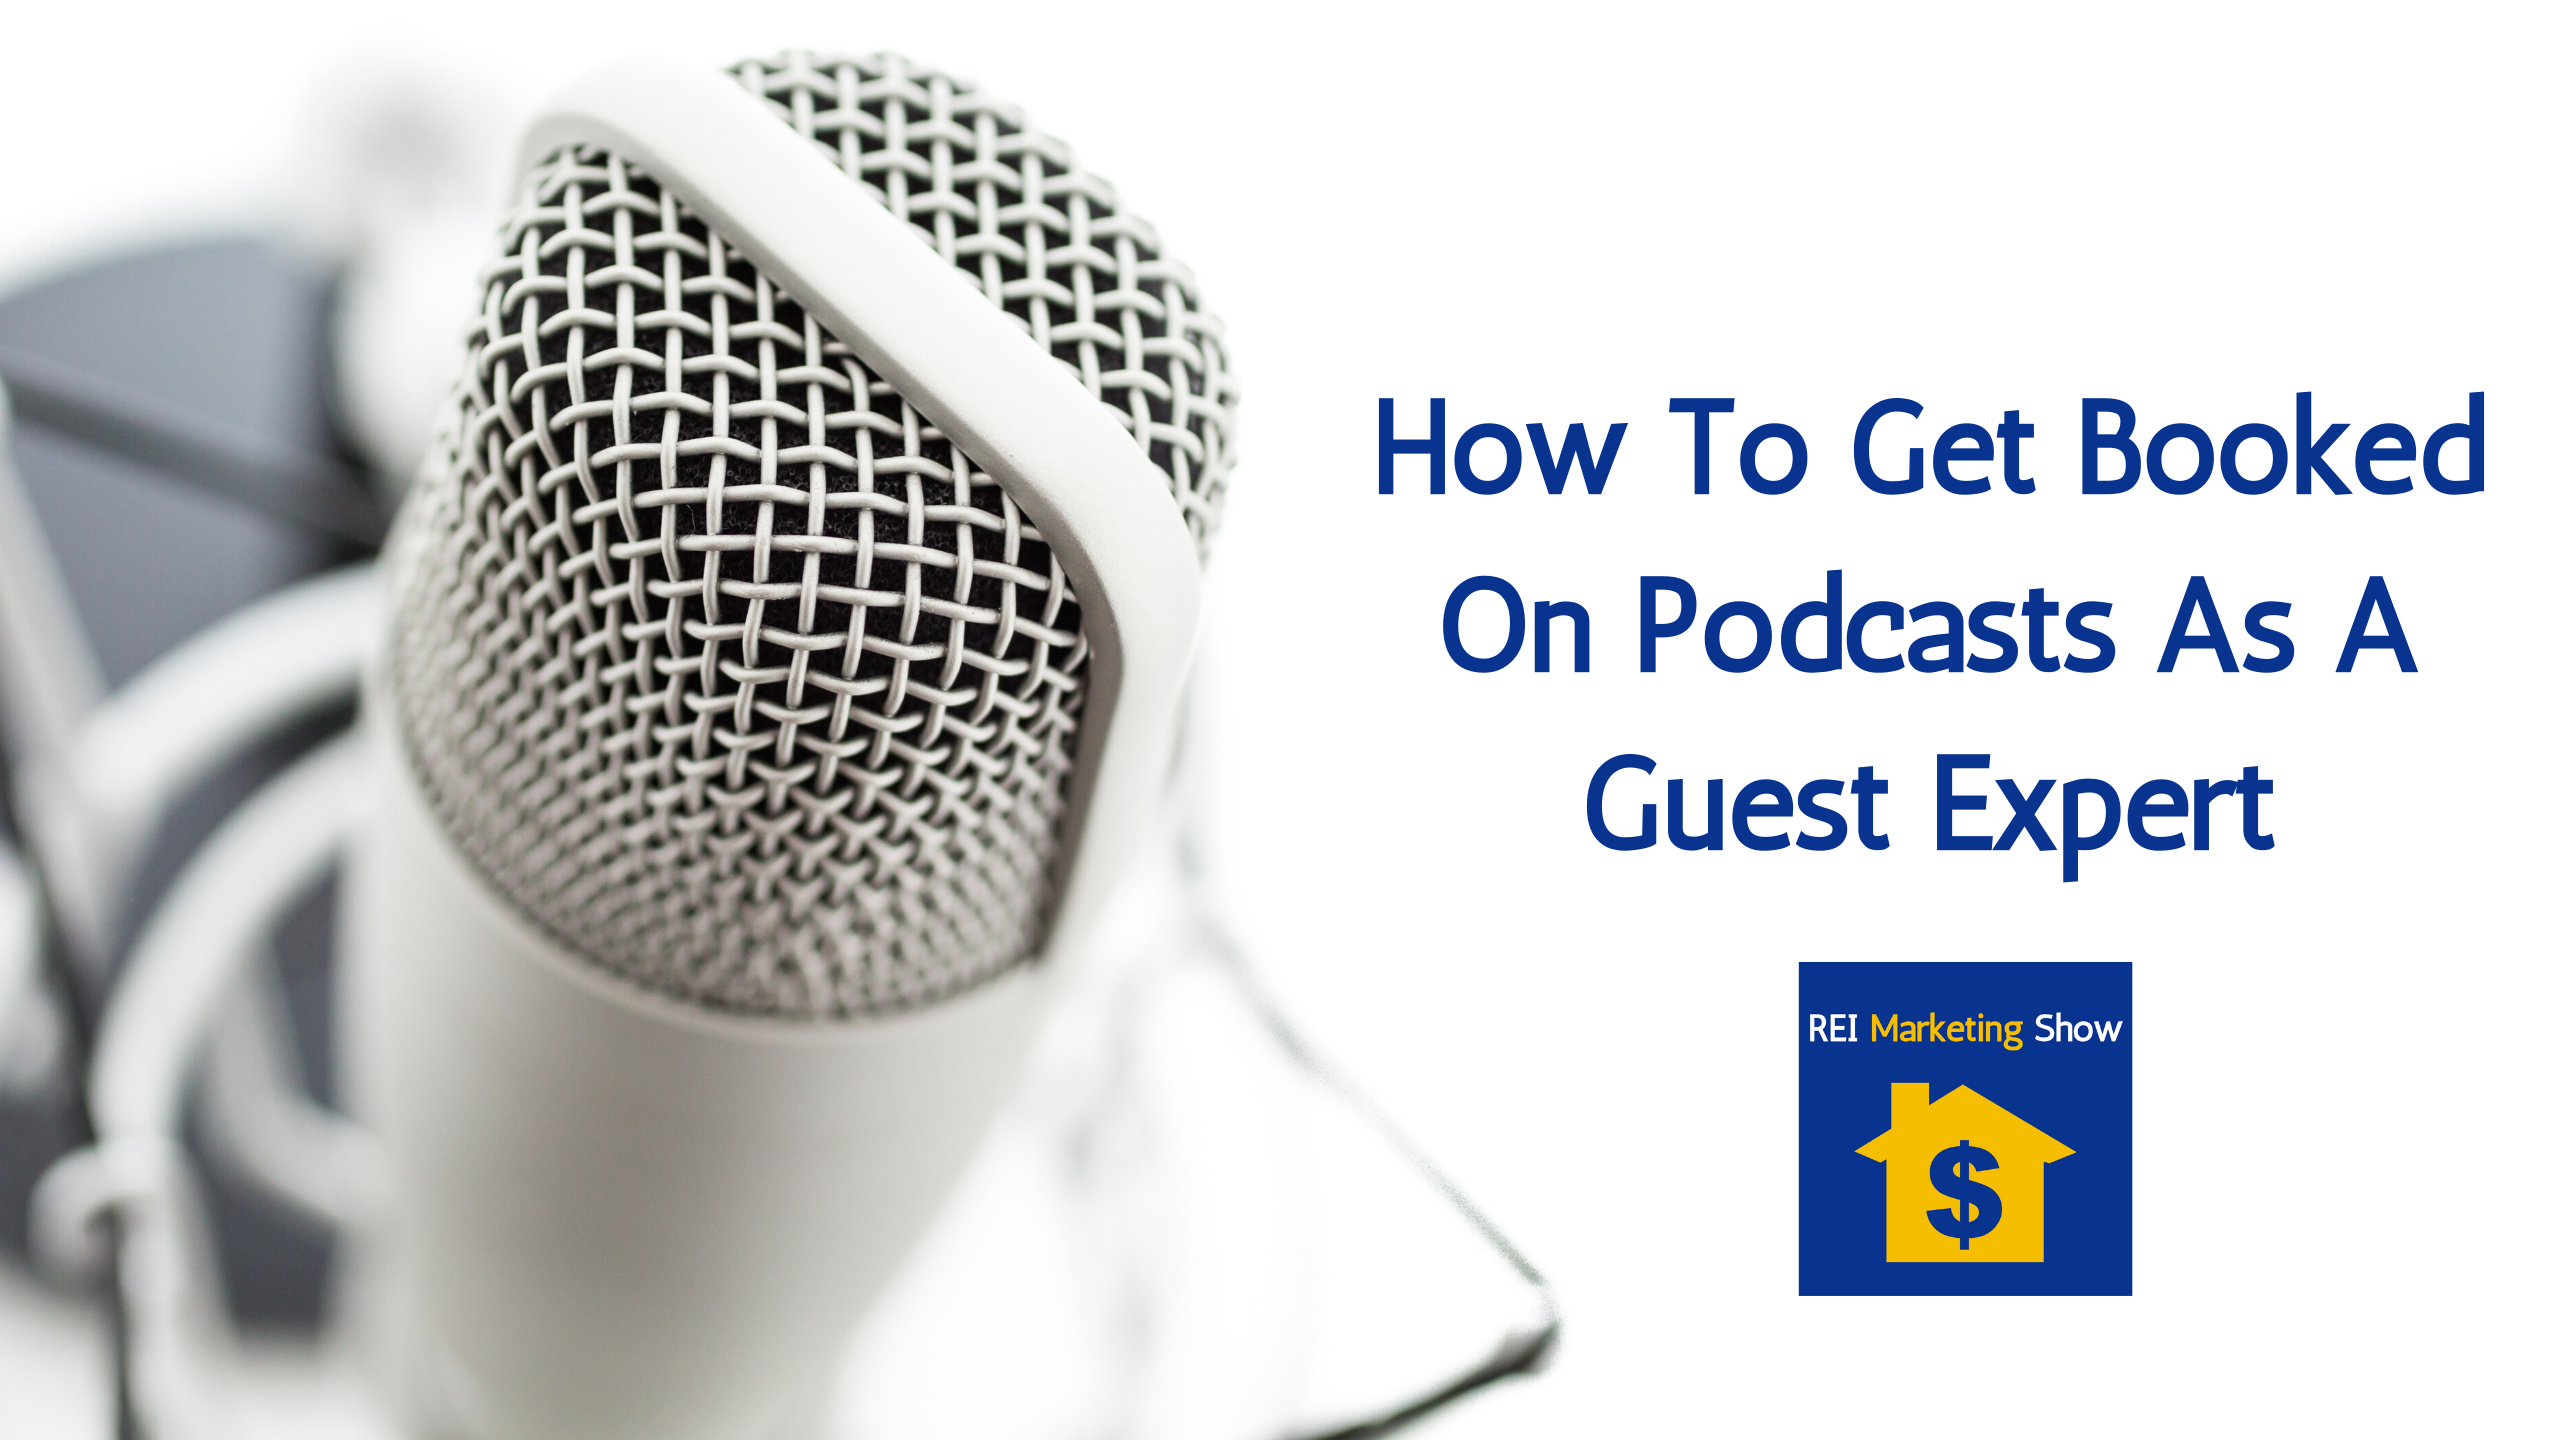 How to Get Booked on Podcasts As a Guest Expert - REI Marketing Show